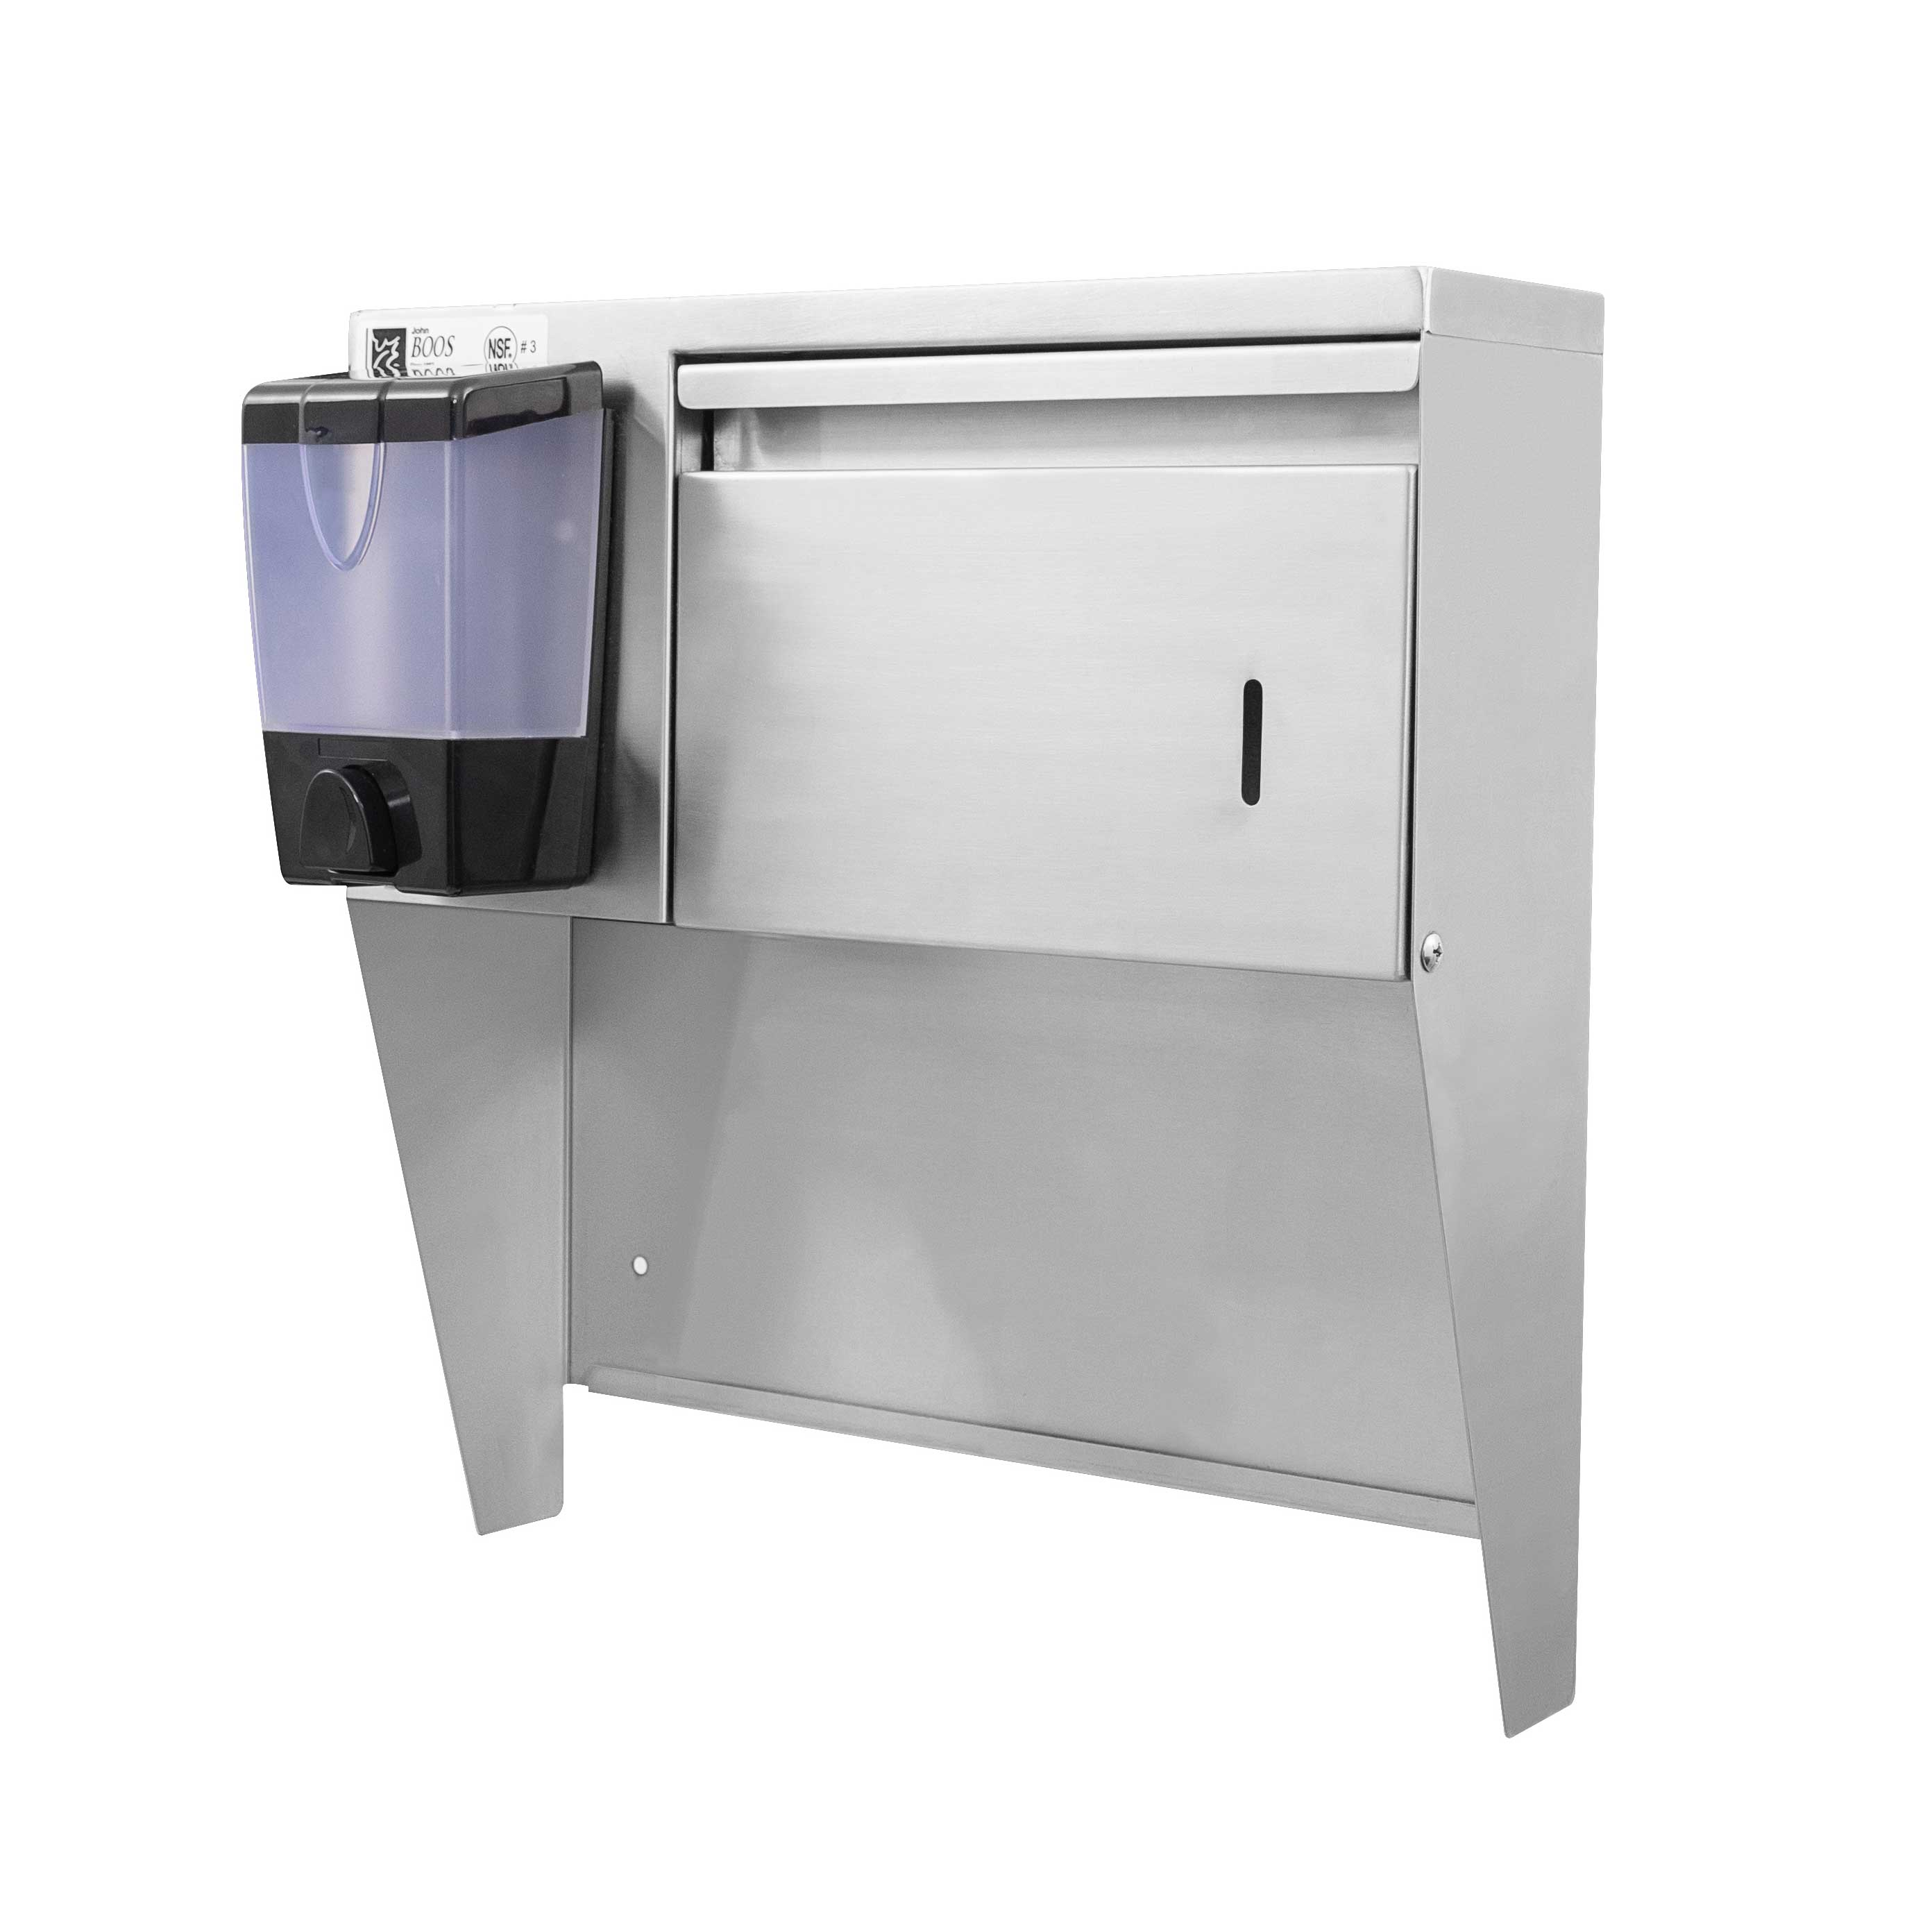 John Boos PB-STD-1410 paper towel dispenser